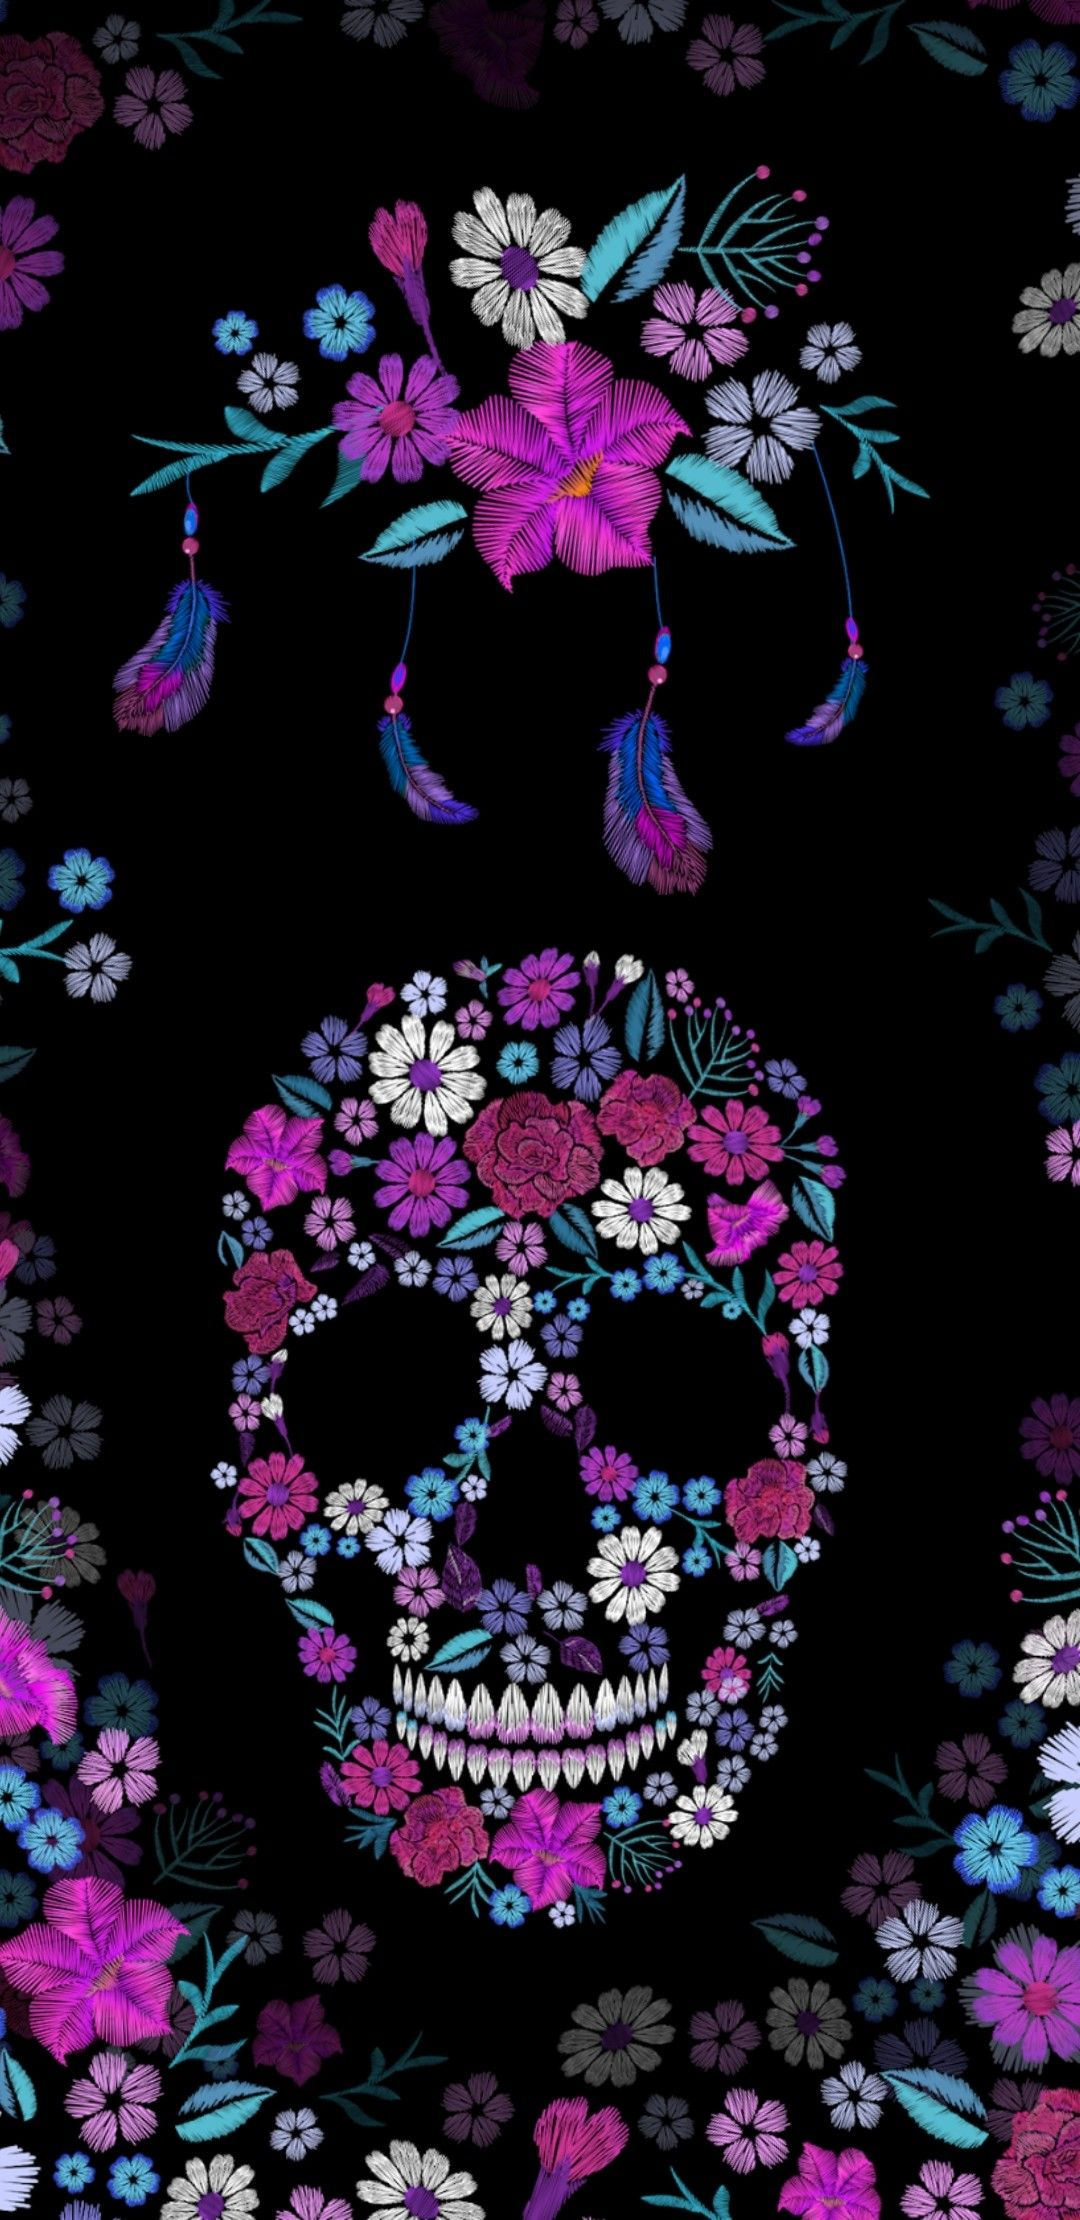 Pin Dany On Wallpapers Iphone Skull Pictures Jpg 1080x2220 Sugar Emo Sticker Girly